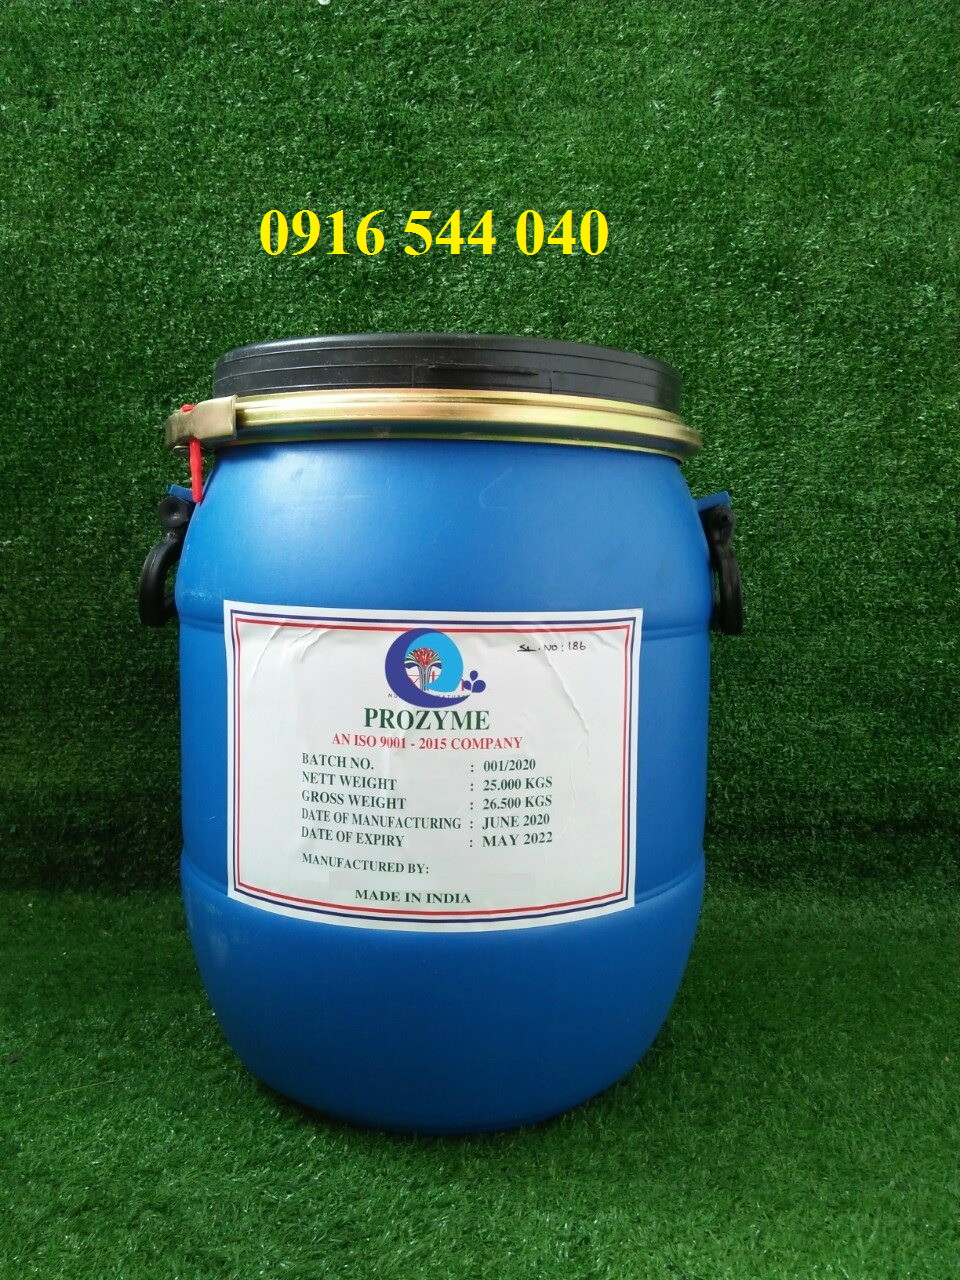 enzyme-tay-nhot-bat-diet-rong-xu-ly-nuoc-2371